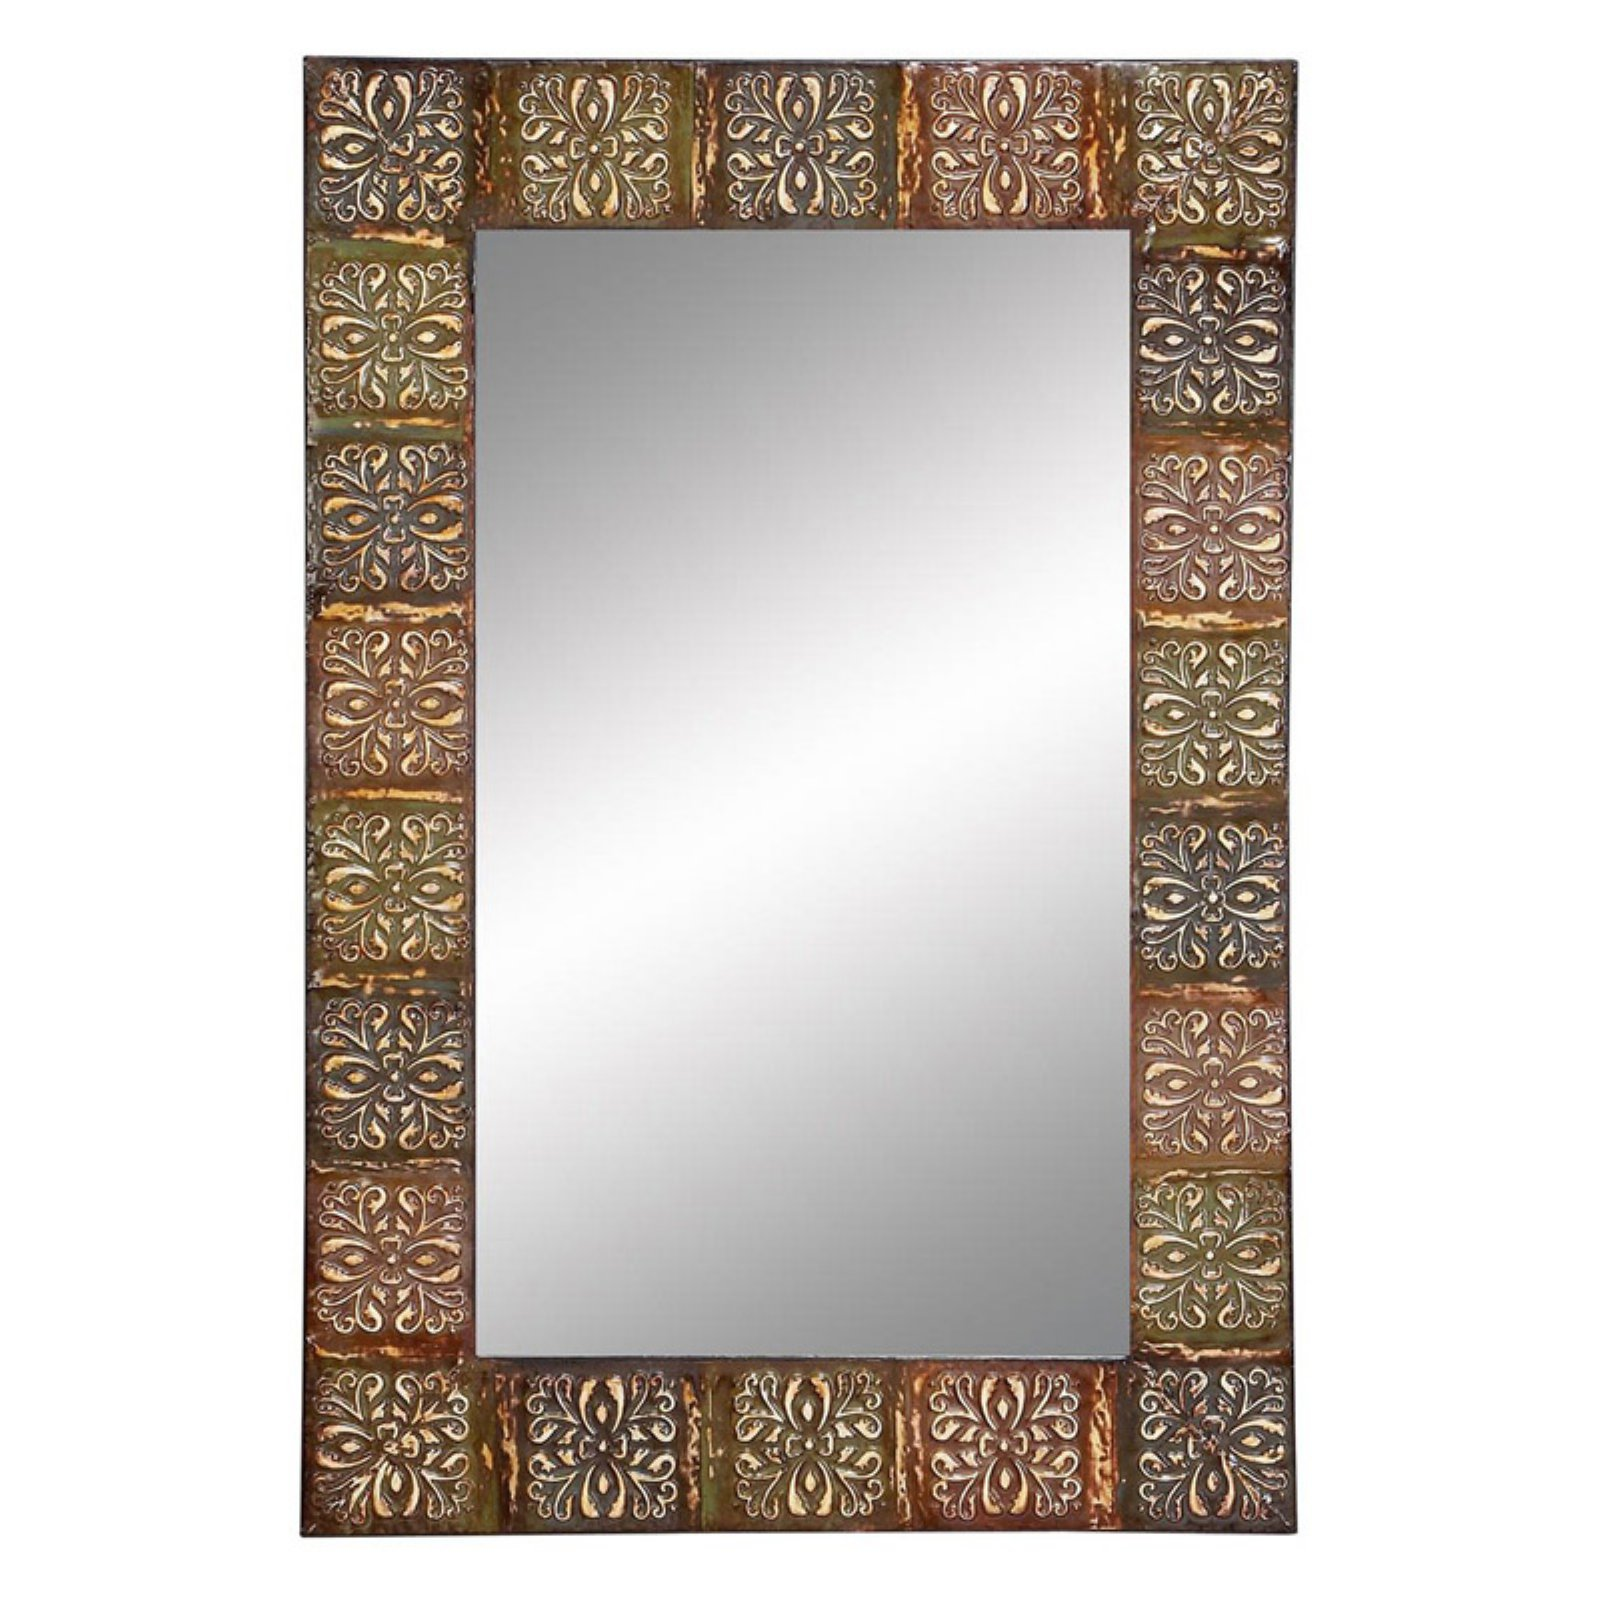 Decmode Metal Wall Mirror, Multi Color